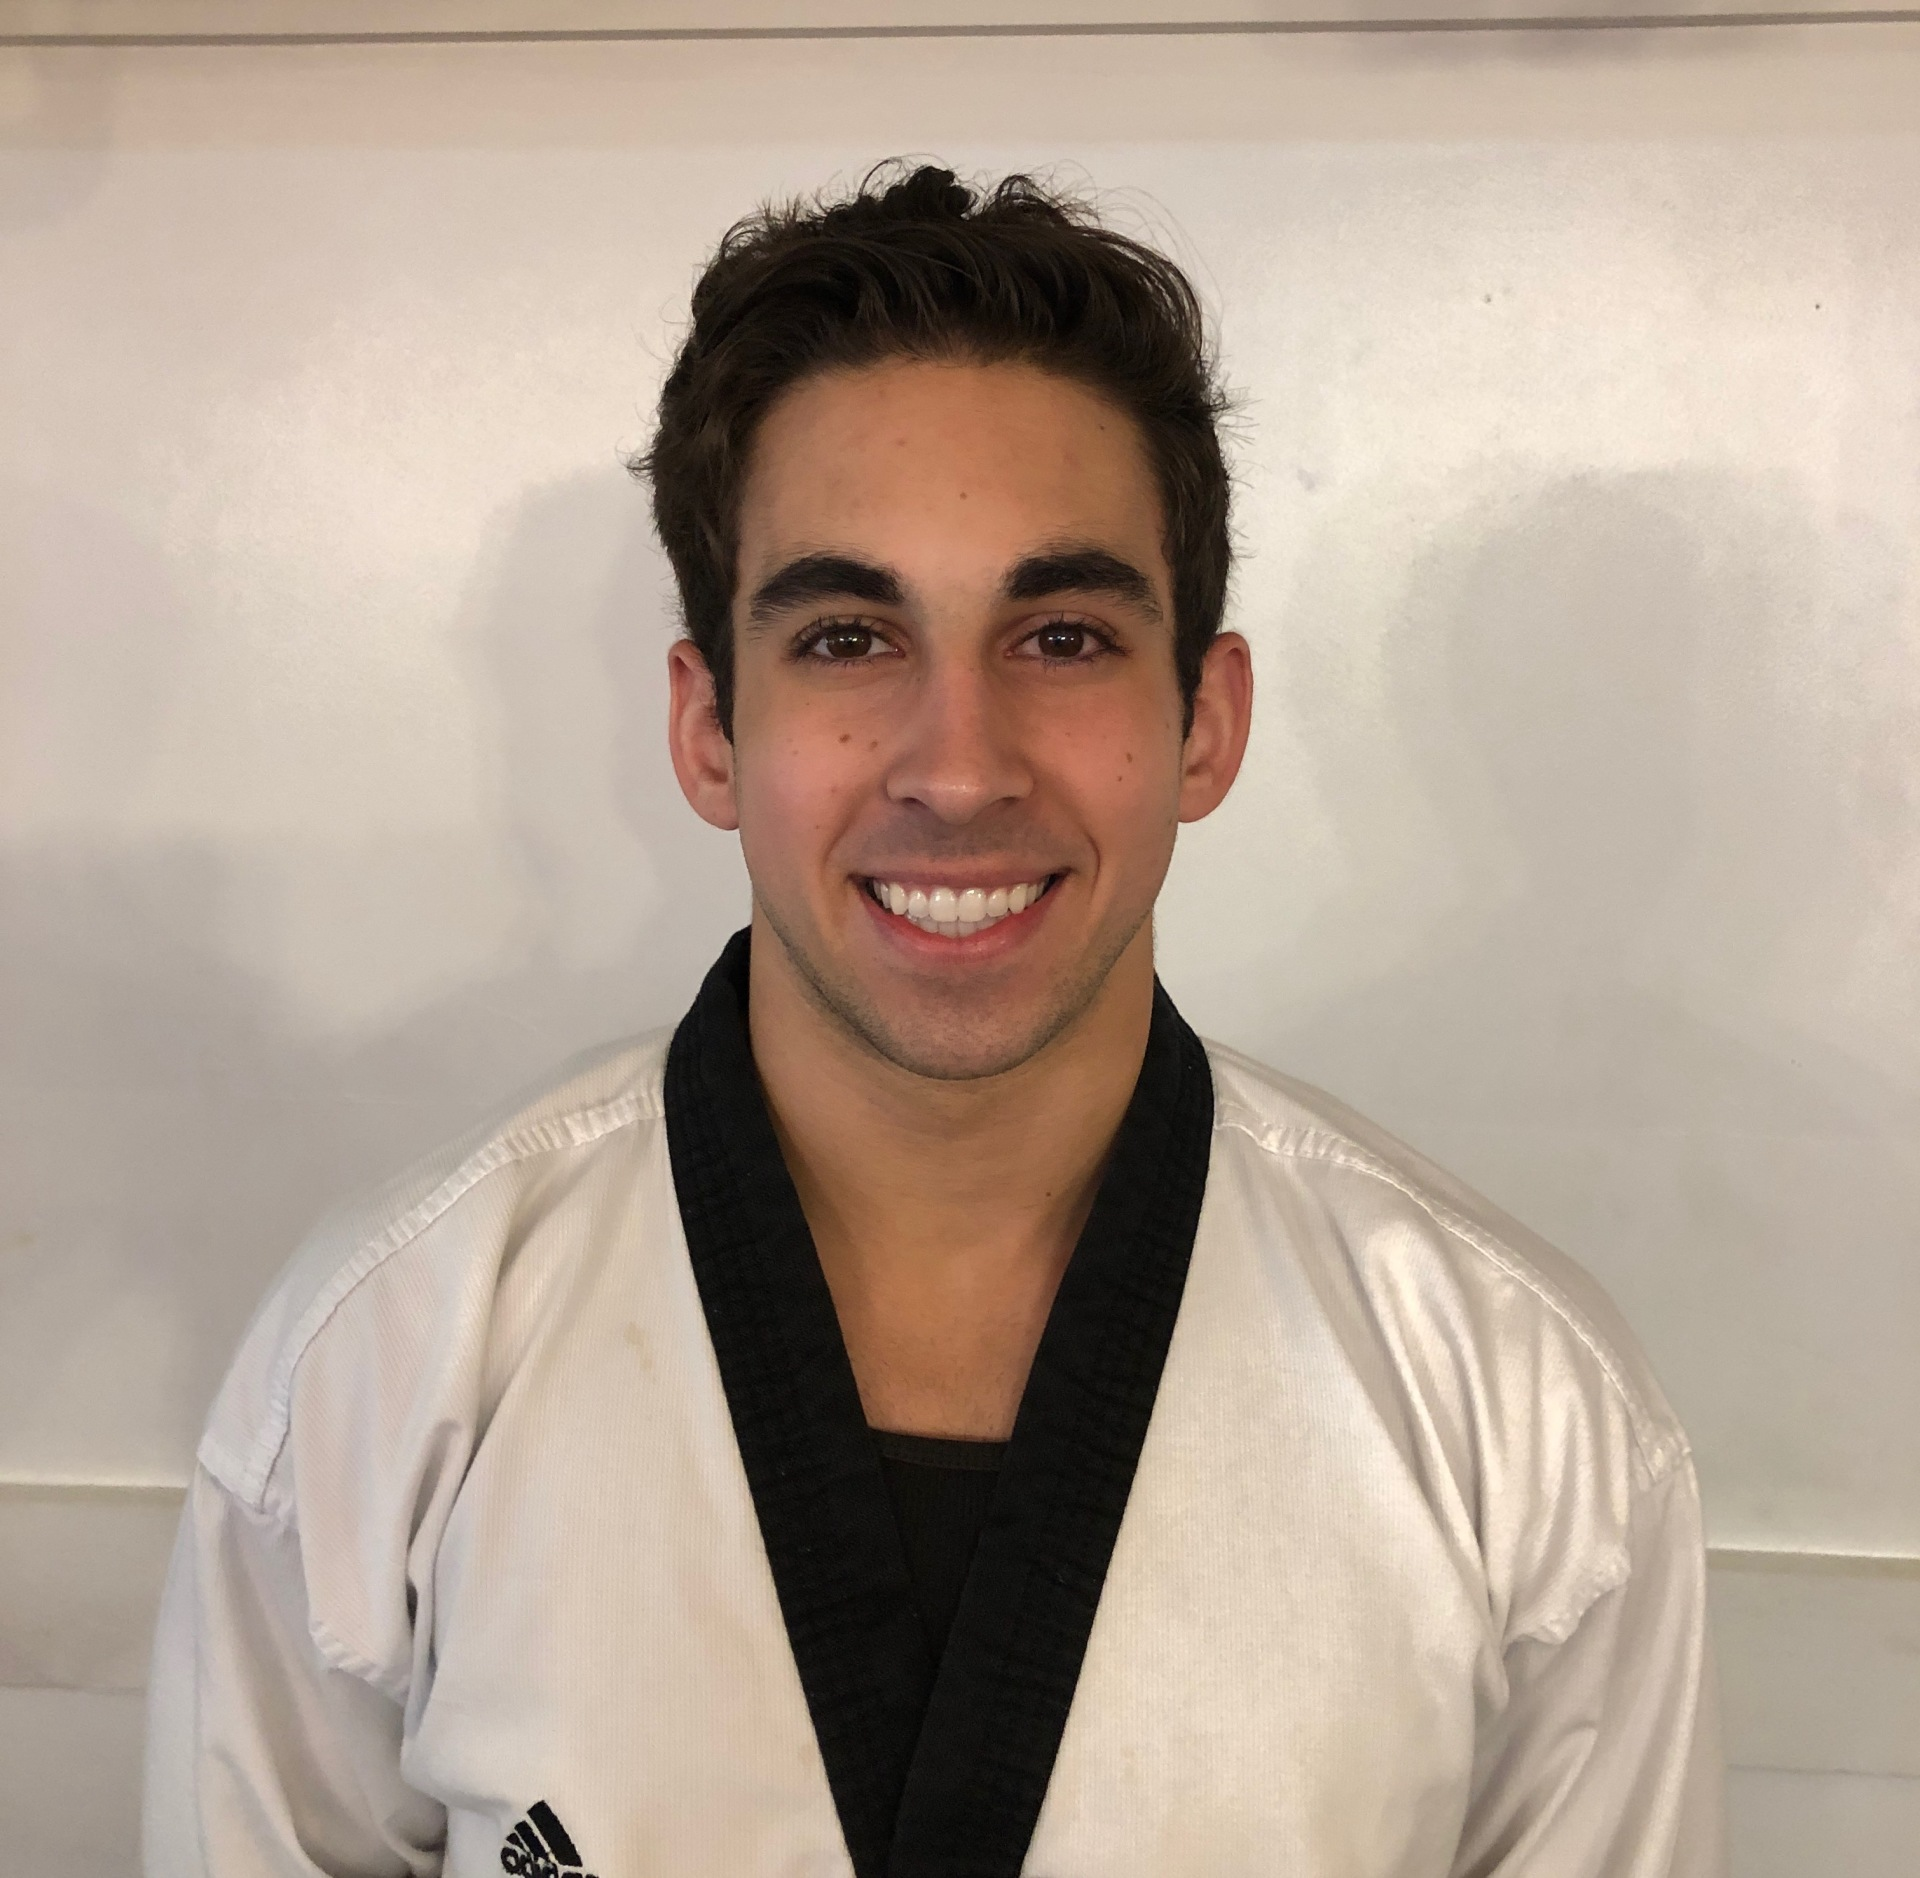 Assistant Instructor Freddy Tauro